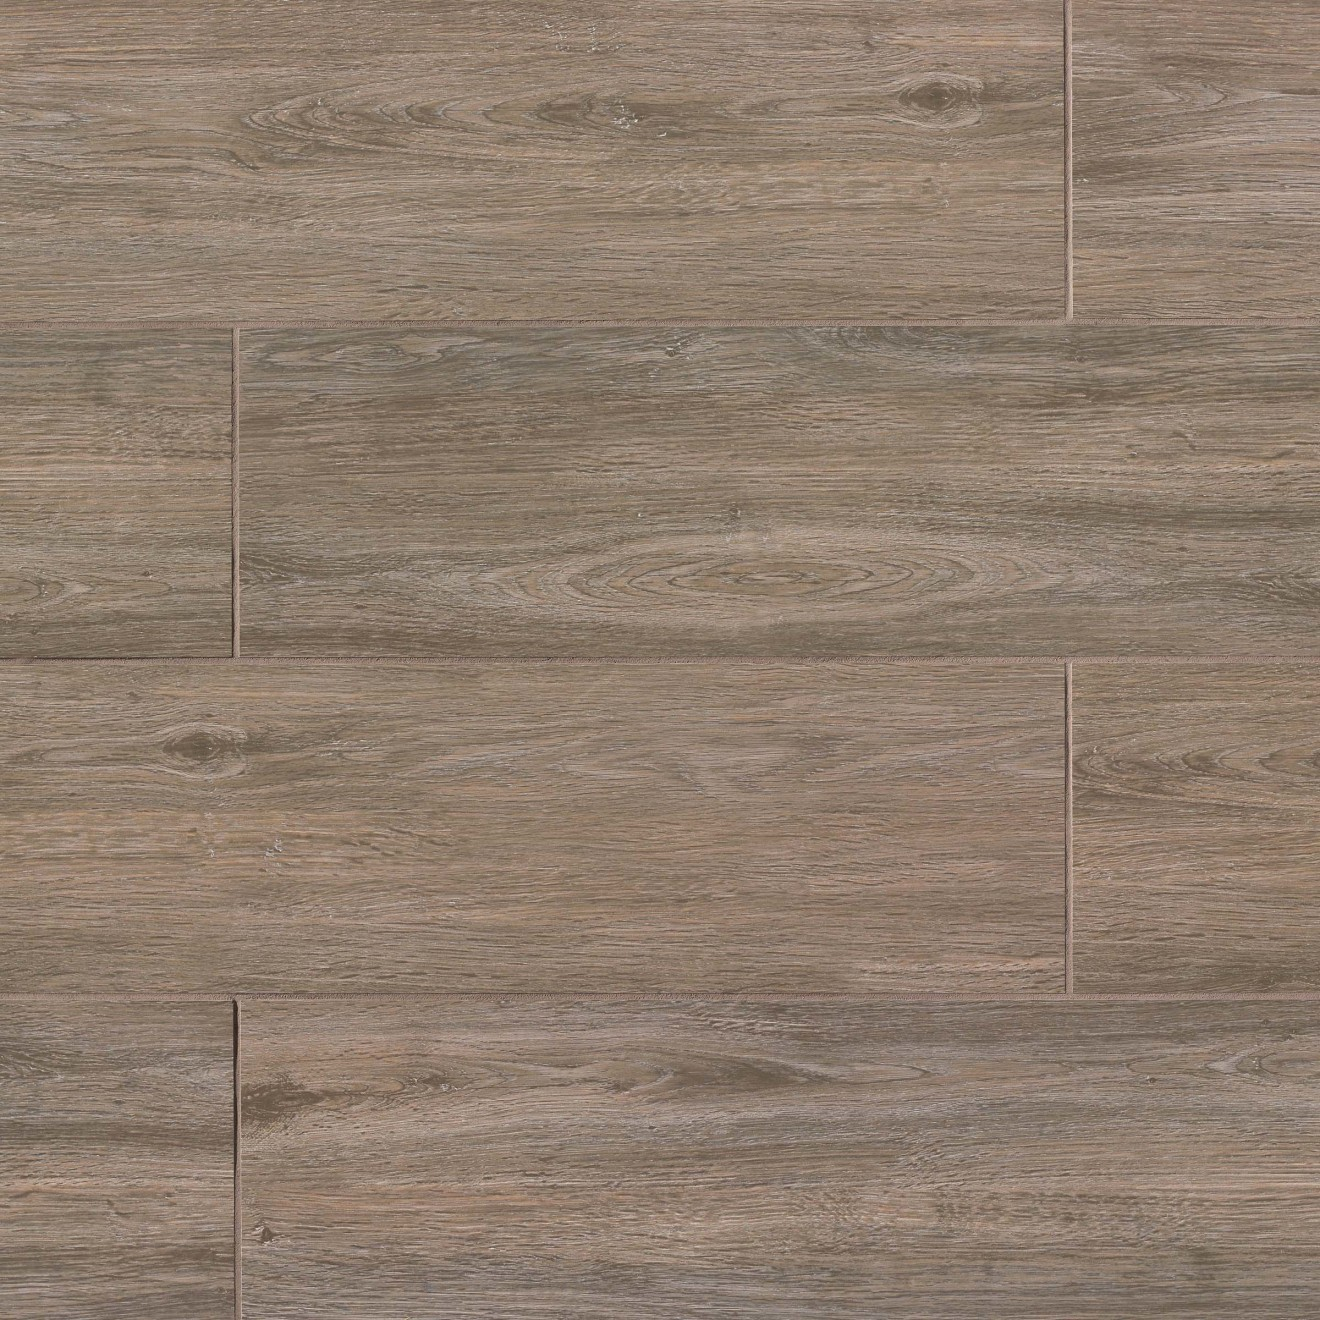 Titus 8 X 36 X 38 Floor And Wall Tile In Noce